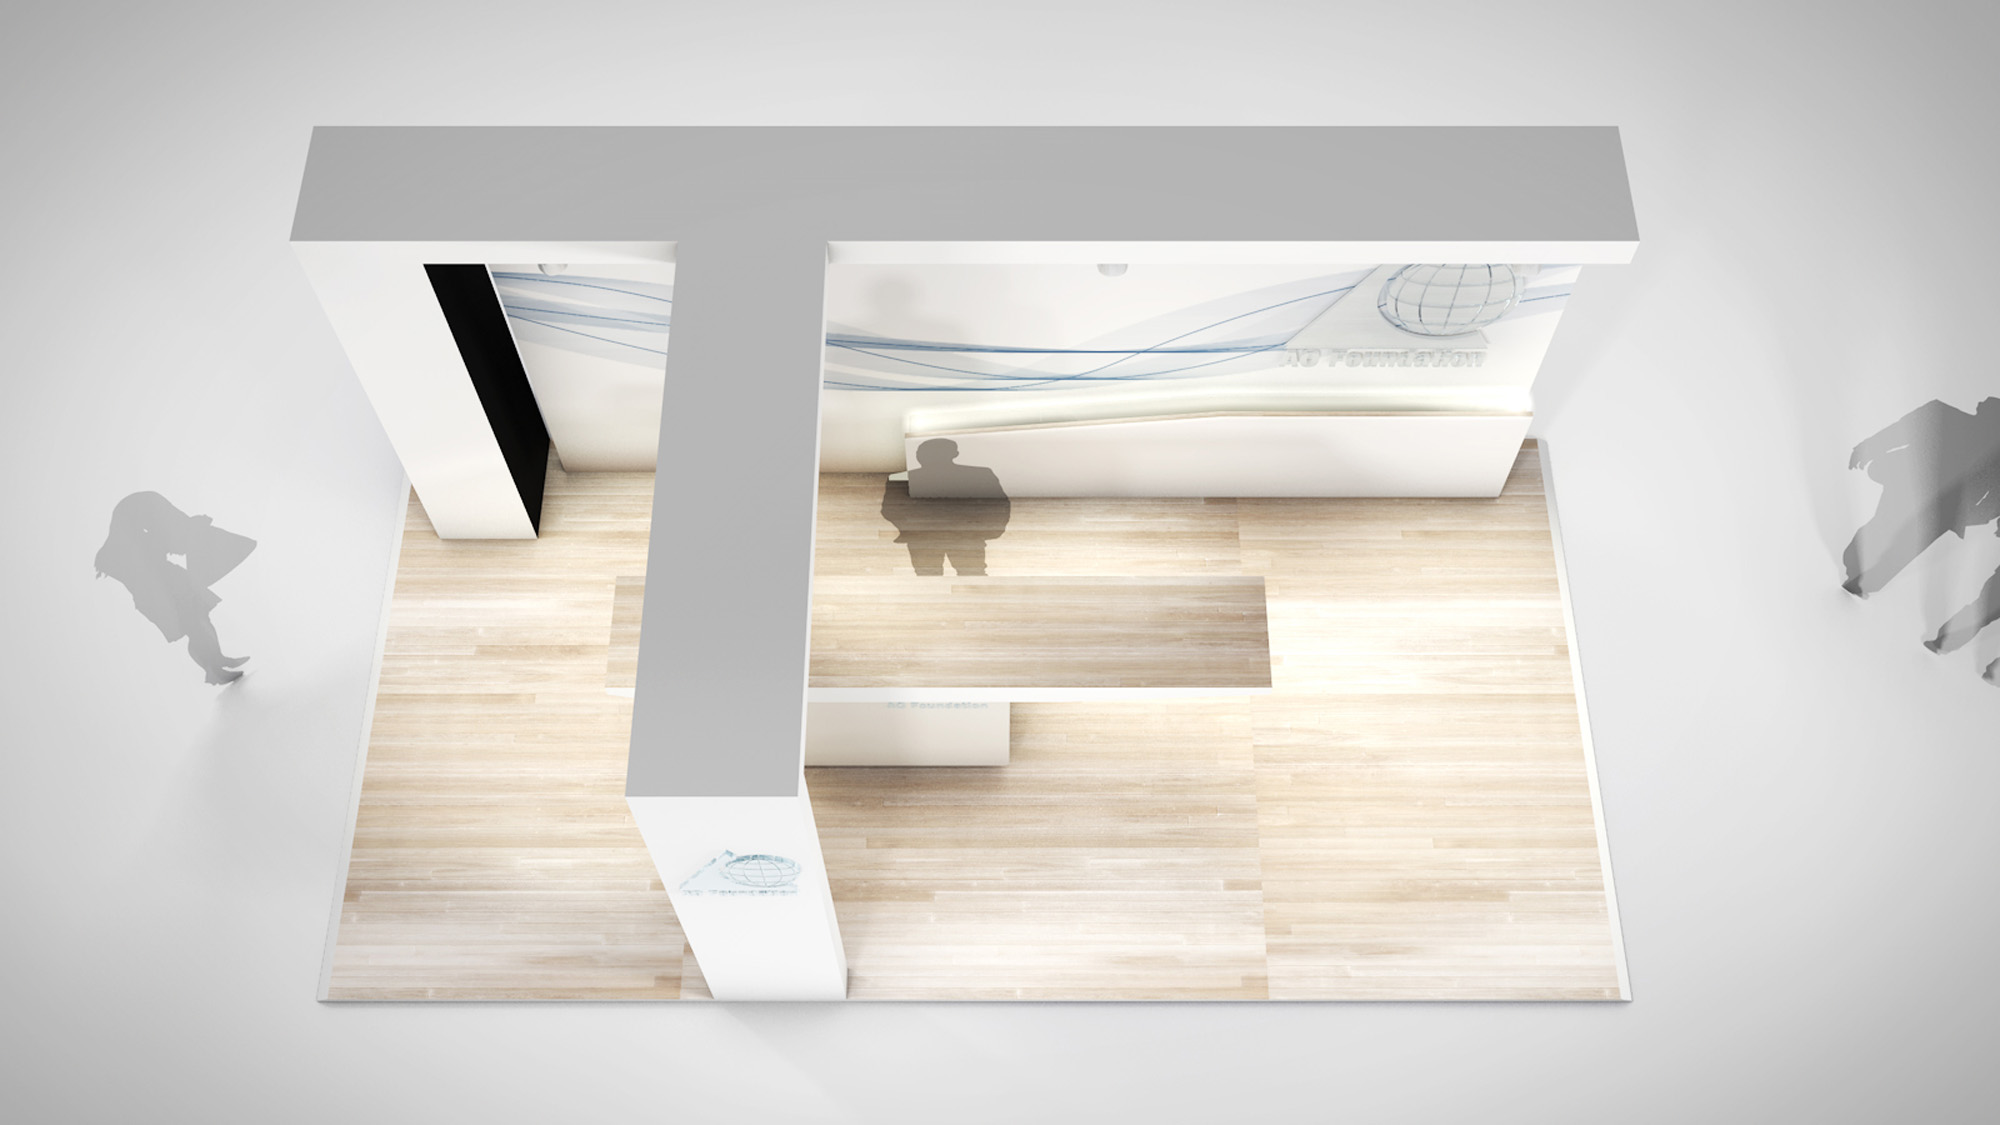 rico chiari Messestanddesign 3D-Rendering